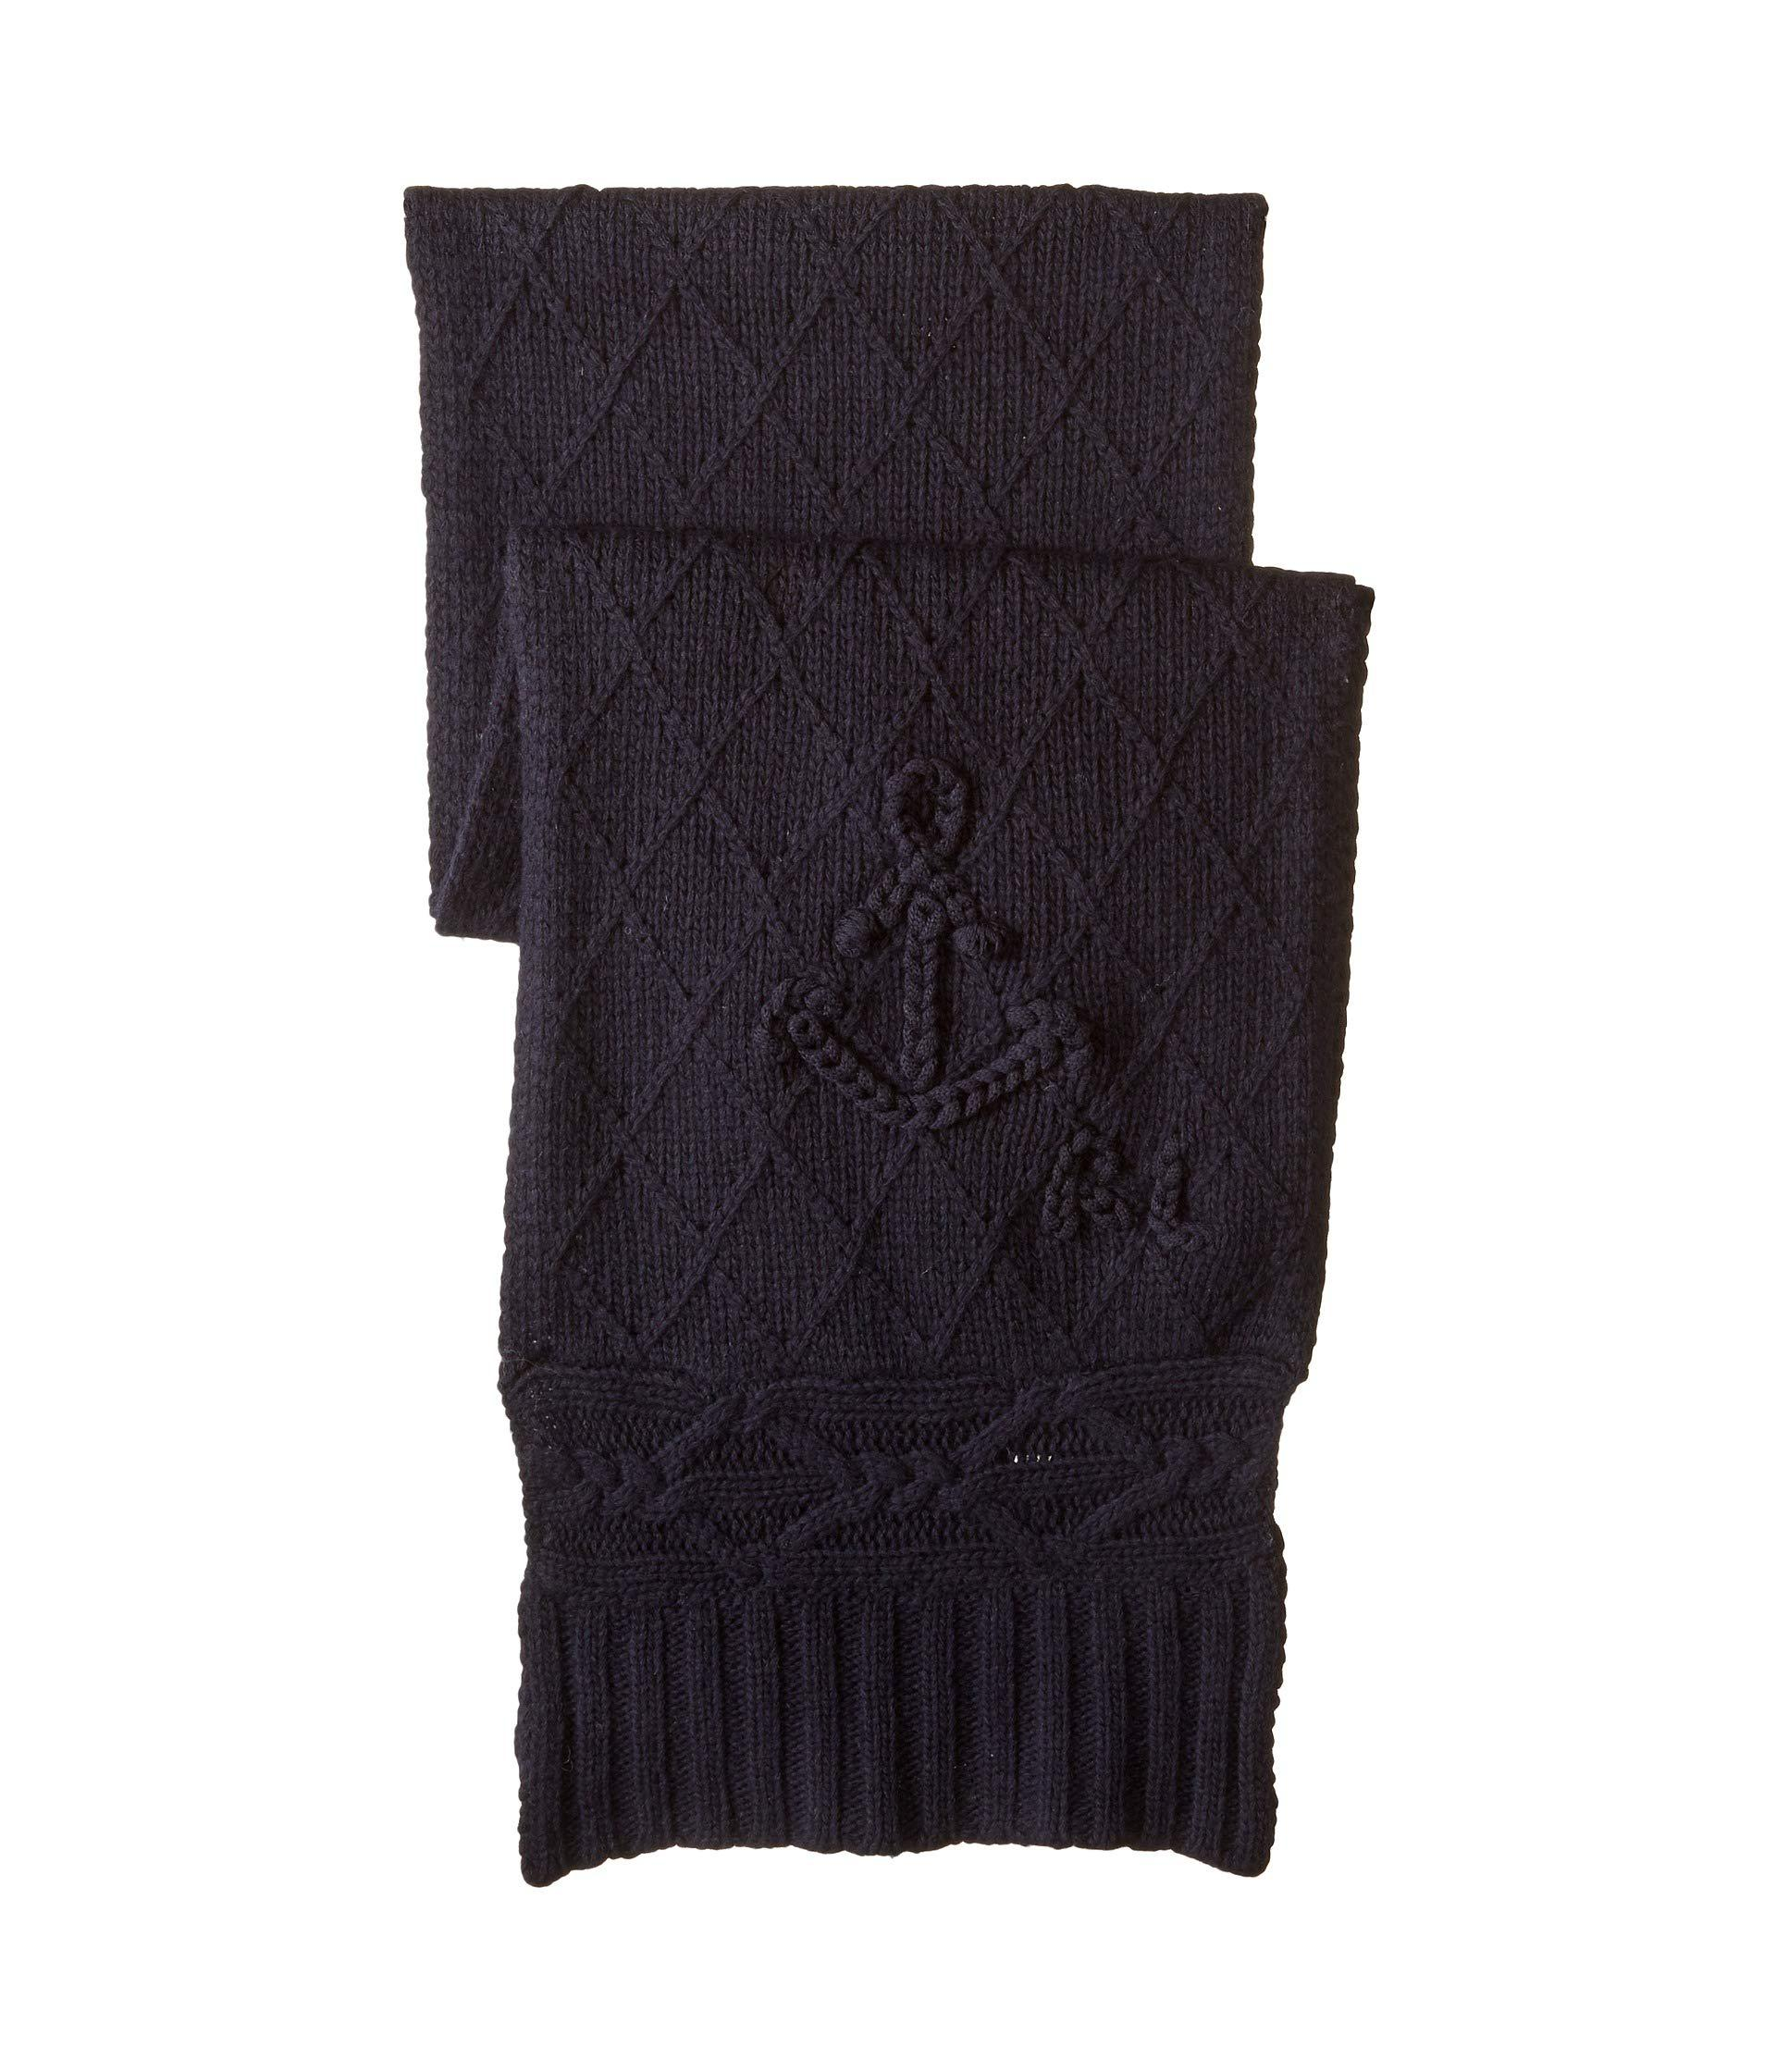 Lyst - Polo Ralph Lauren Chainstitch Anchor Scarf in Blue - Save  50.72463768115942% b02b09c0ac3